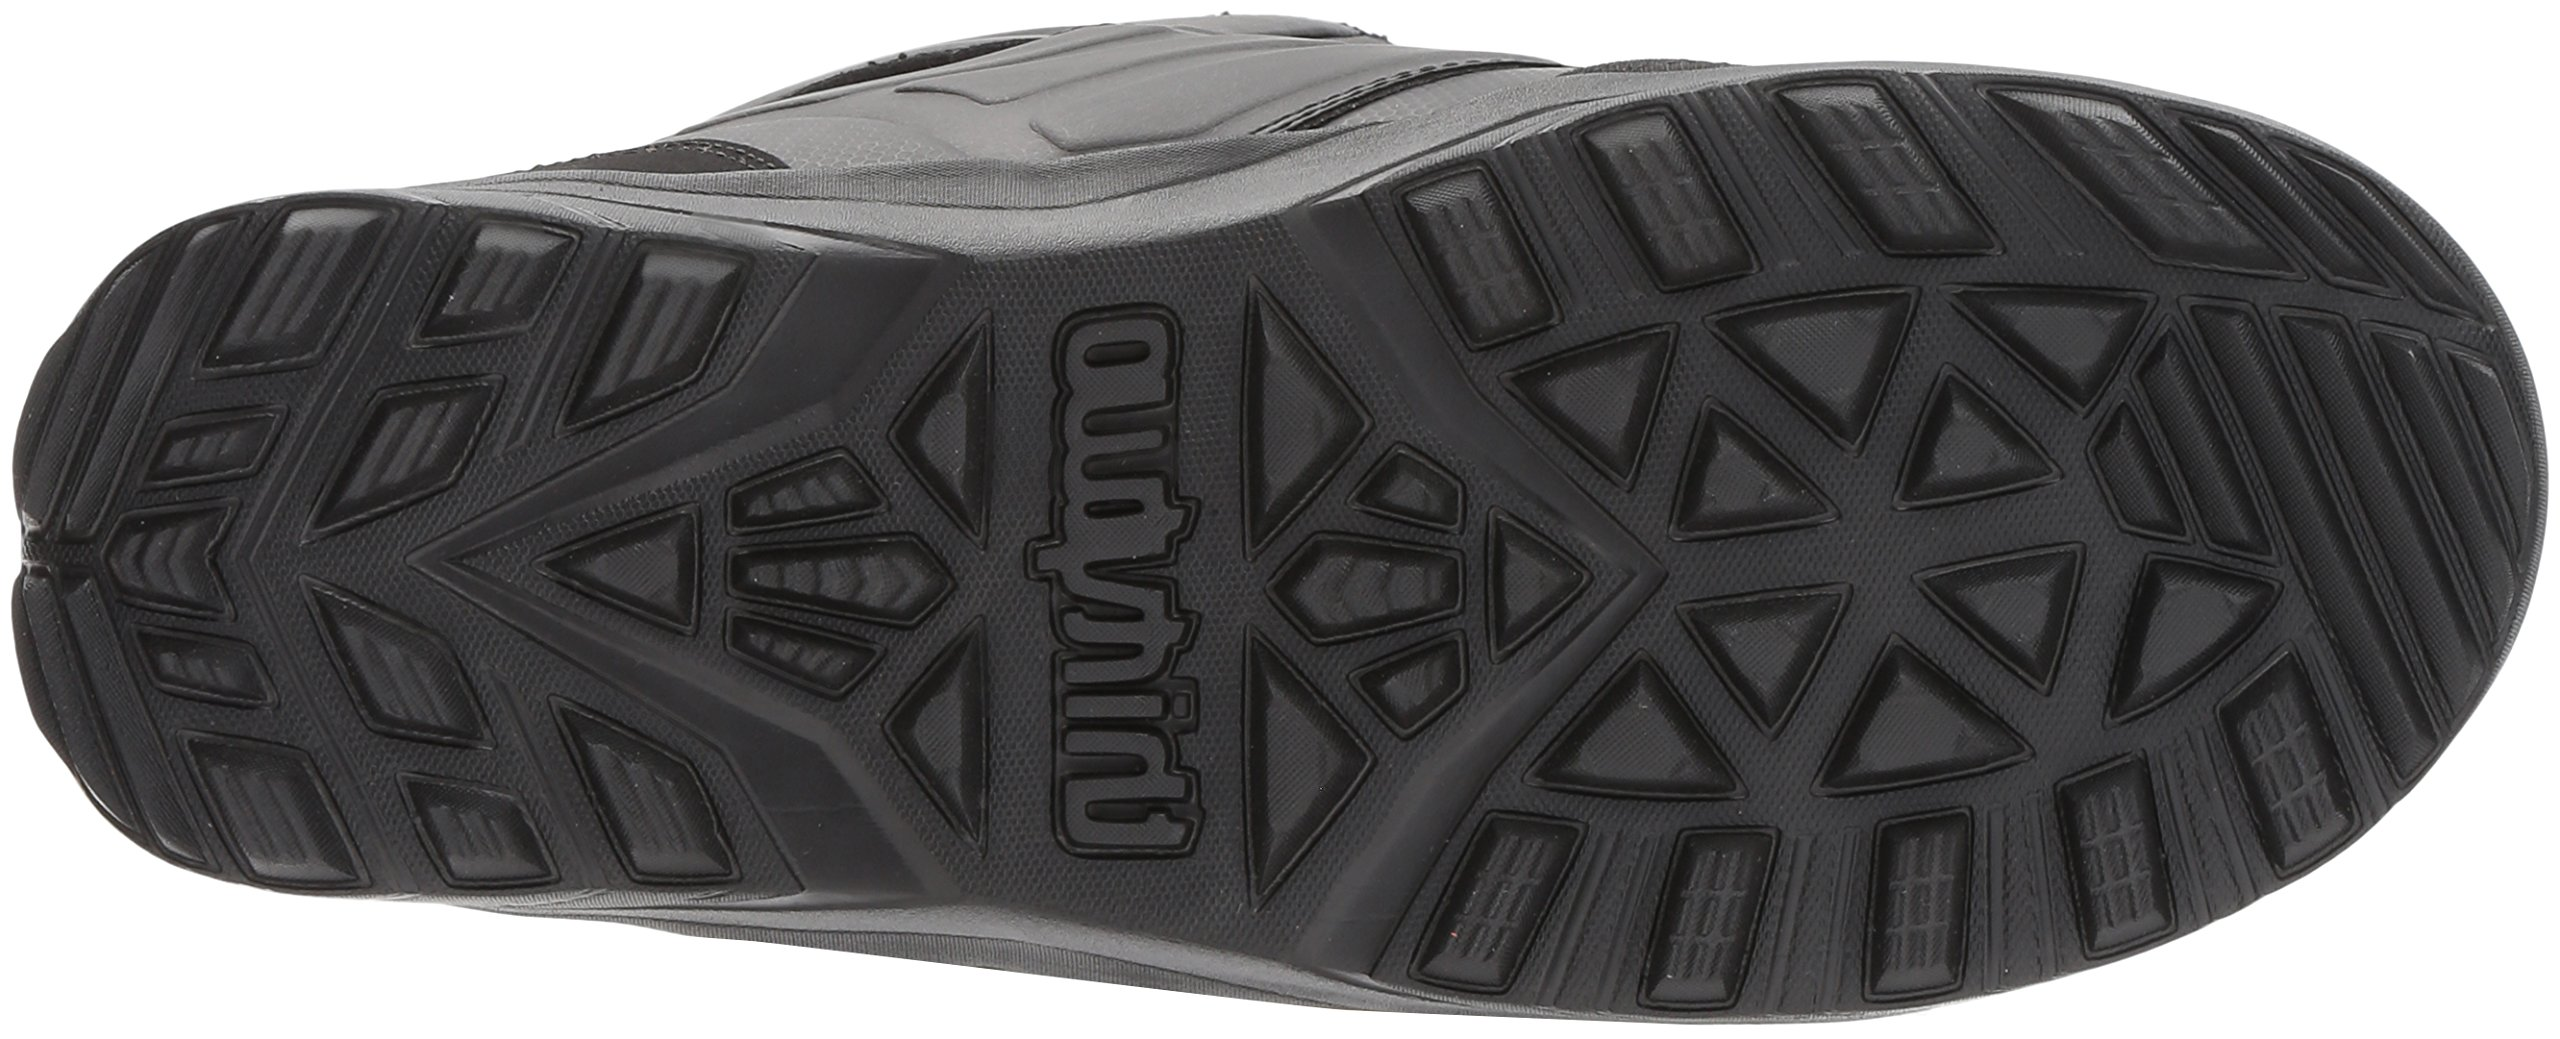 thirtytwo Lashed Snowboard Boot Men's